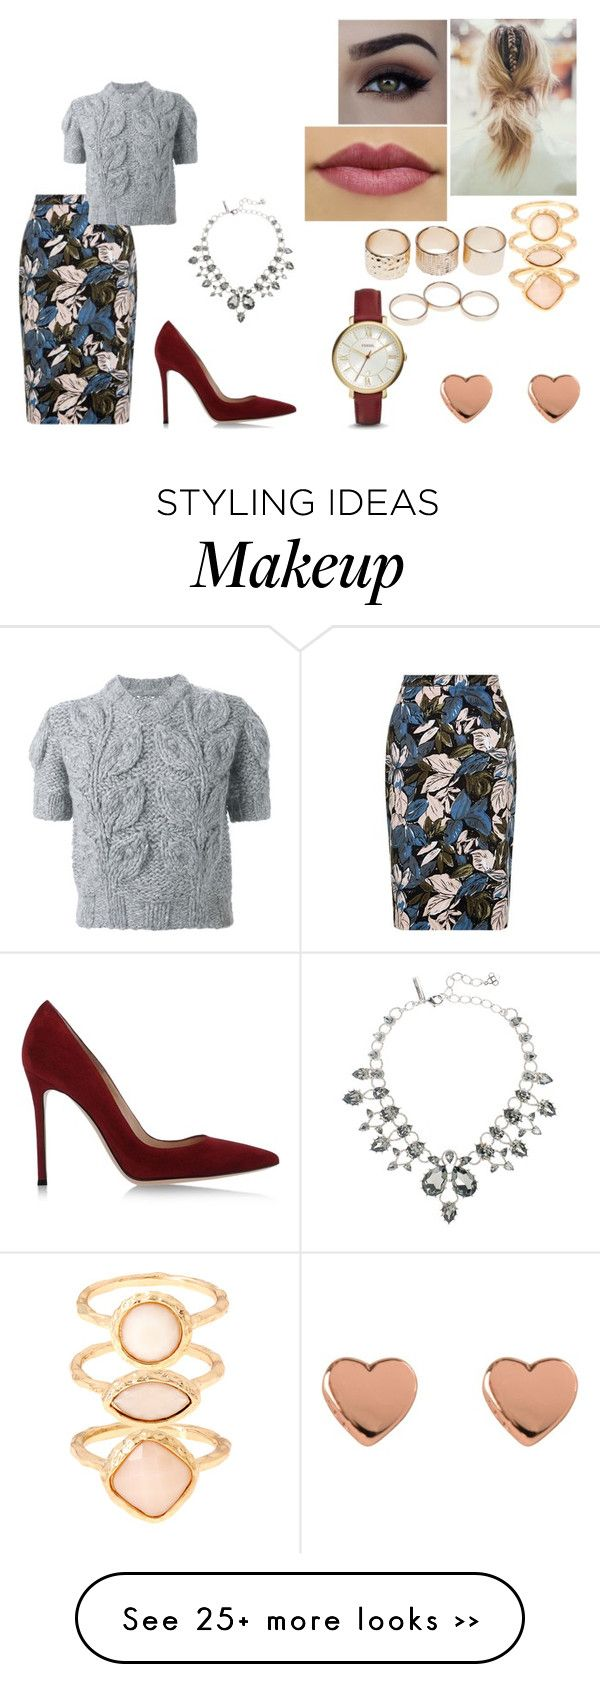 """Good Morning America"" by taynabaracho3 on Polyvore featuring Maison Margiela, Gianvito Rossi, Monsoon, Wet Seal, Ted Baker, FOSSIL and Oscar de la Renta"